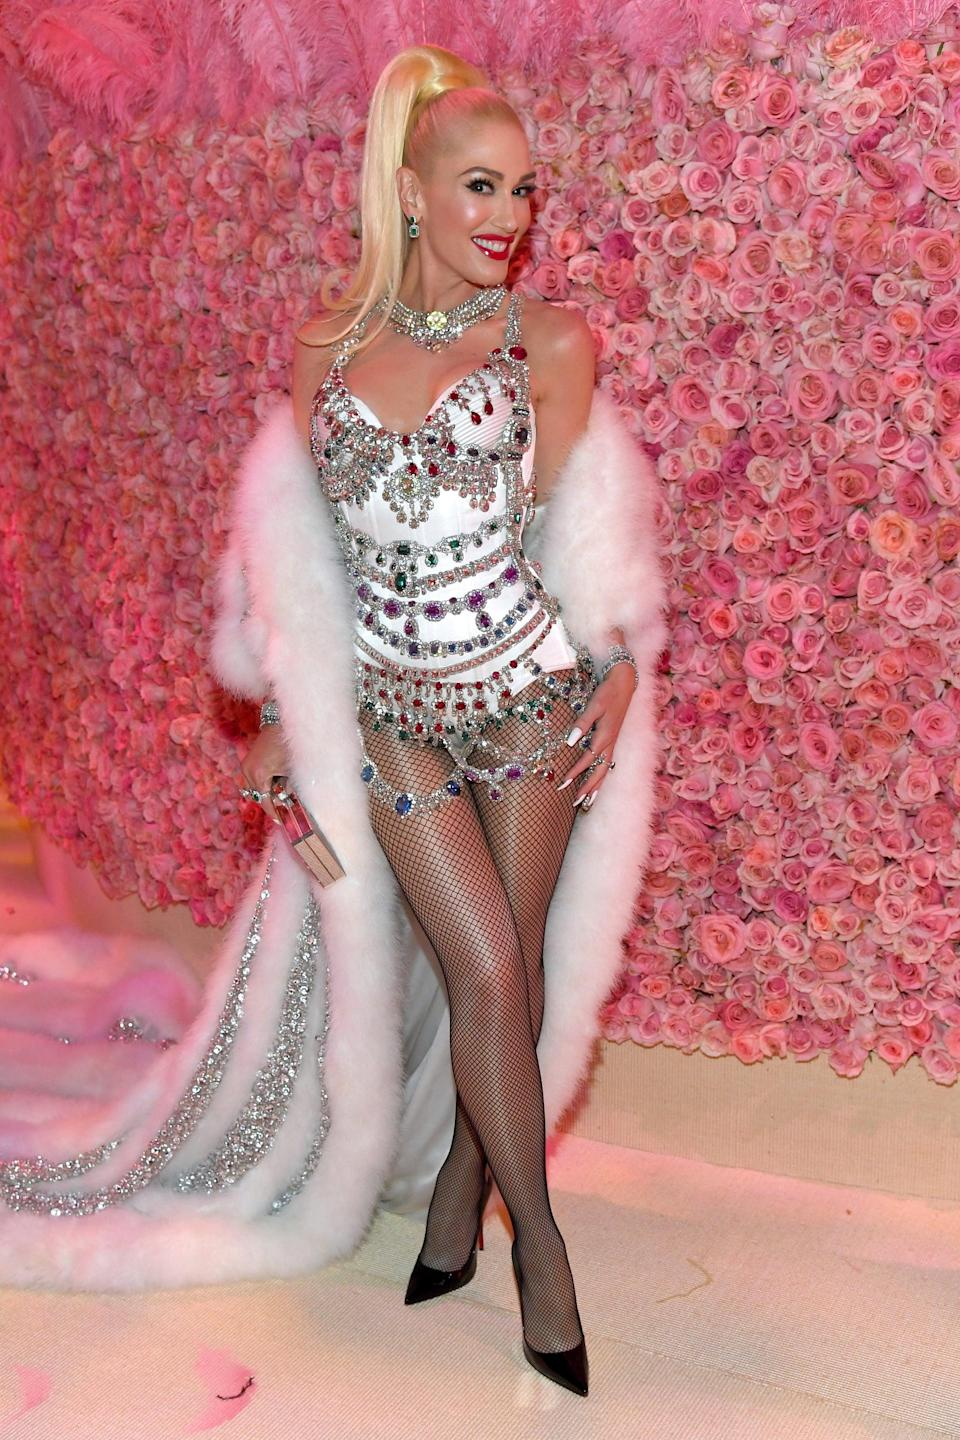 """<p>Wearing <a href=""""https://www.popsugar.com/fashion/photo-gallery/46110280/image/46118930/Gwen-Stefani-2019-Met-Gala"""" class=""""link rapid-noclick-resp"""" rel=""""nofollow noopener"""" target=""""_blank"""" data-ylk=""""slk:a Moschino by Jeremy Scott"""">a Moschino by Jeremy Scott</a> look with Christian Louboutin shoes and EFFY Jewelry at the 2019 Met Gala.</p>"""